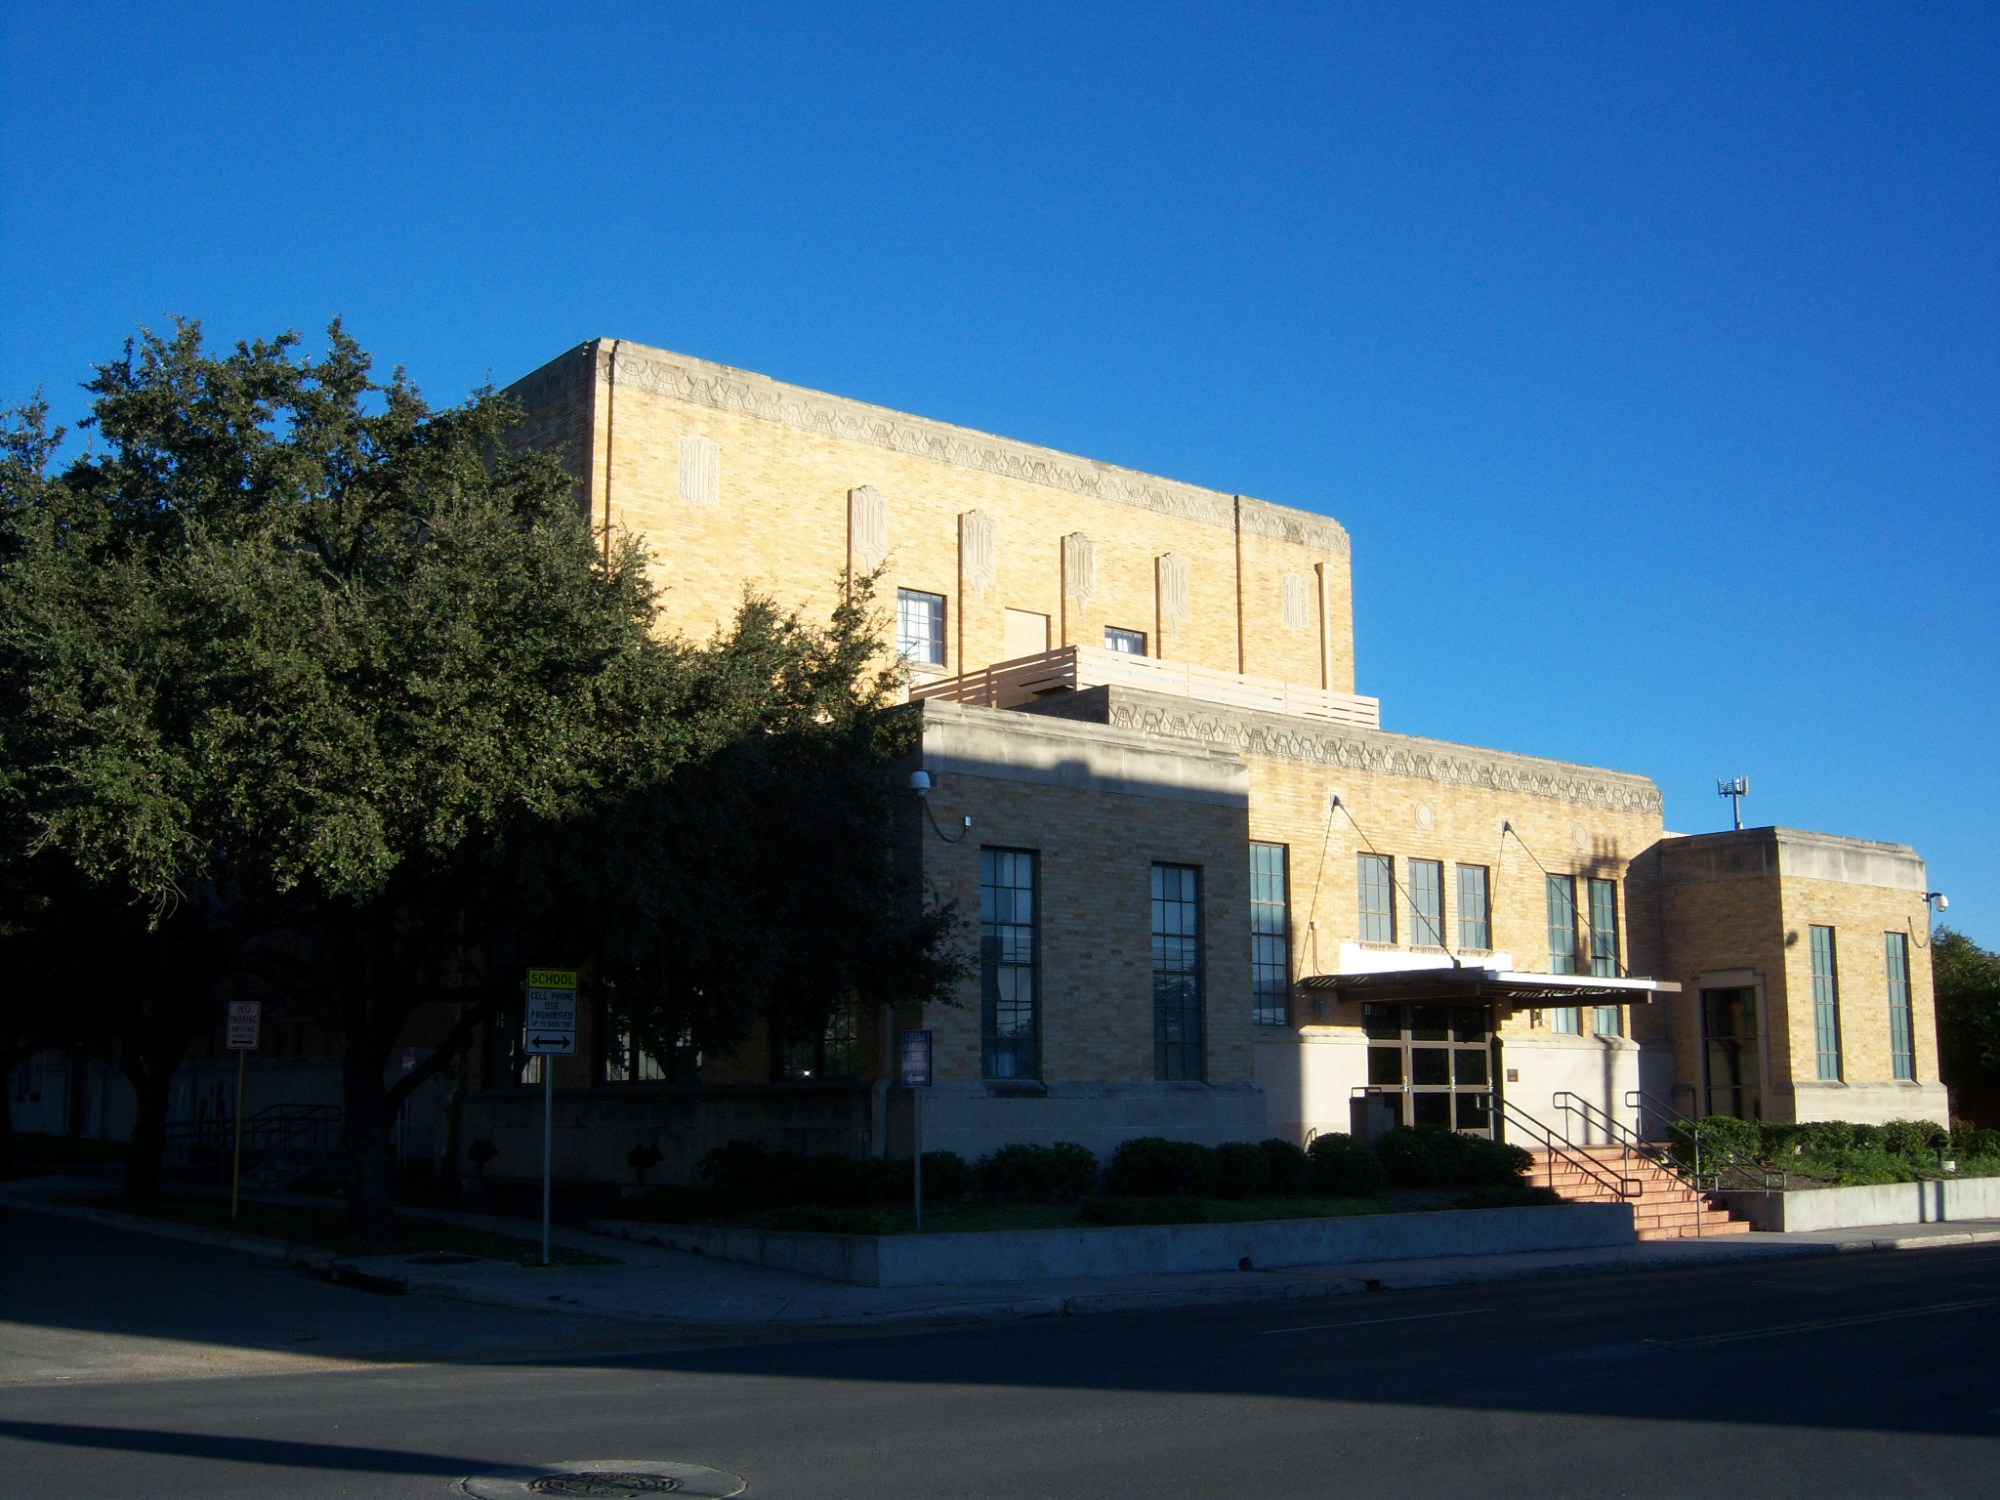 Photo of the Carver Community Cultural Center's exterior.